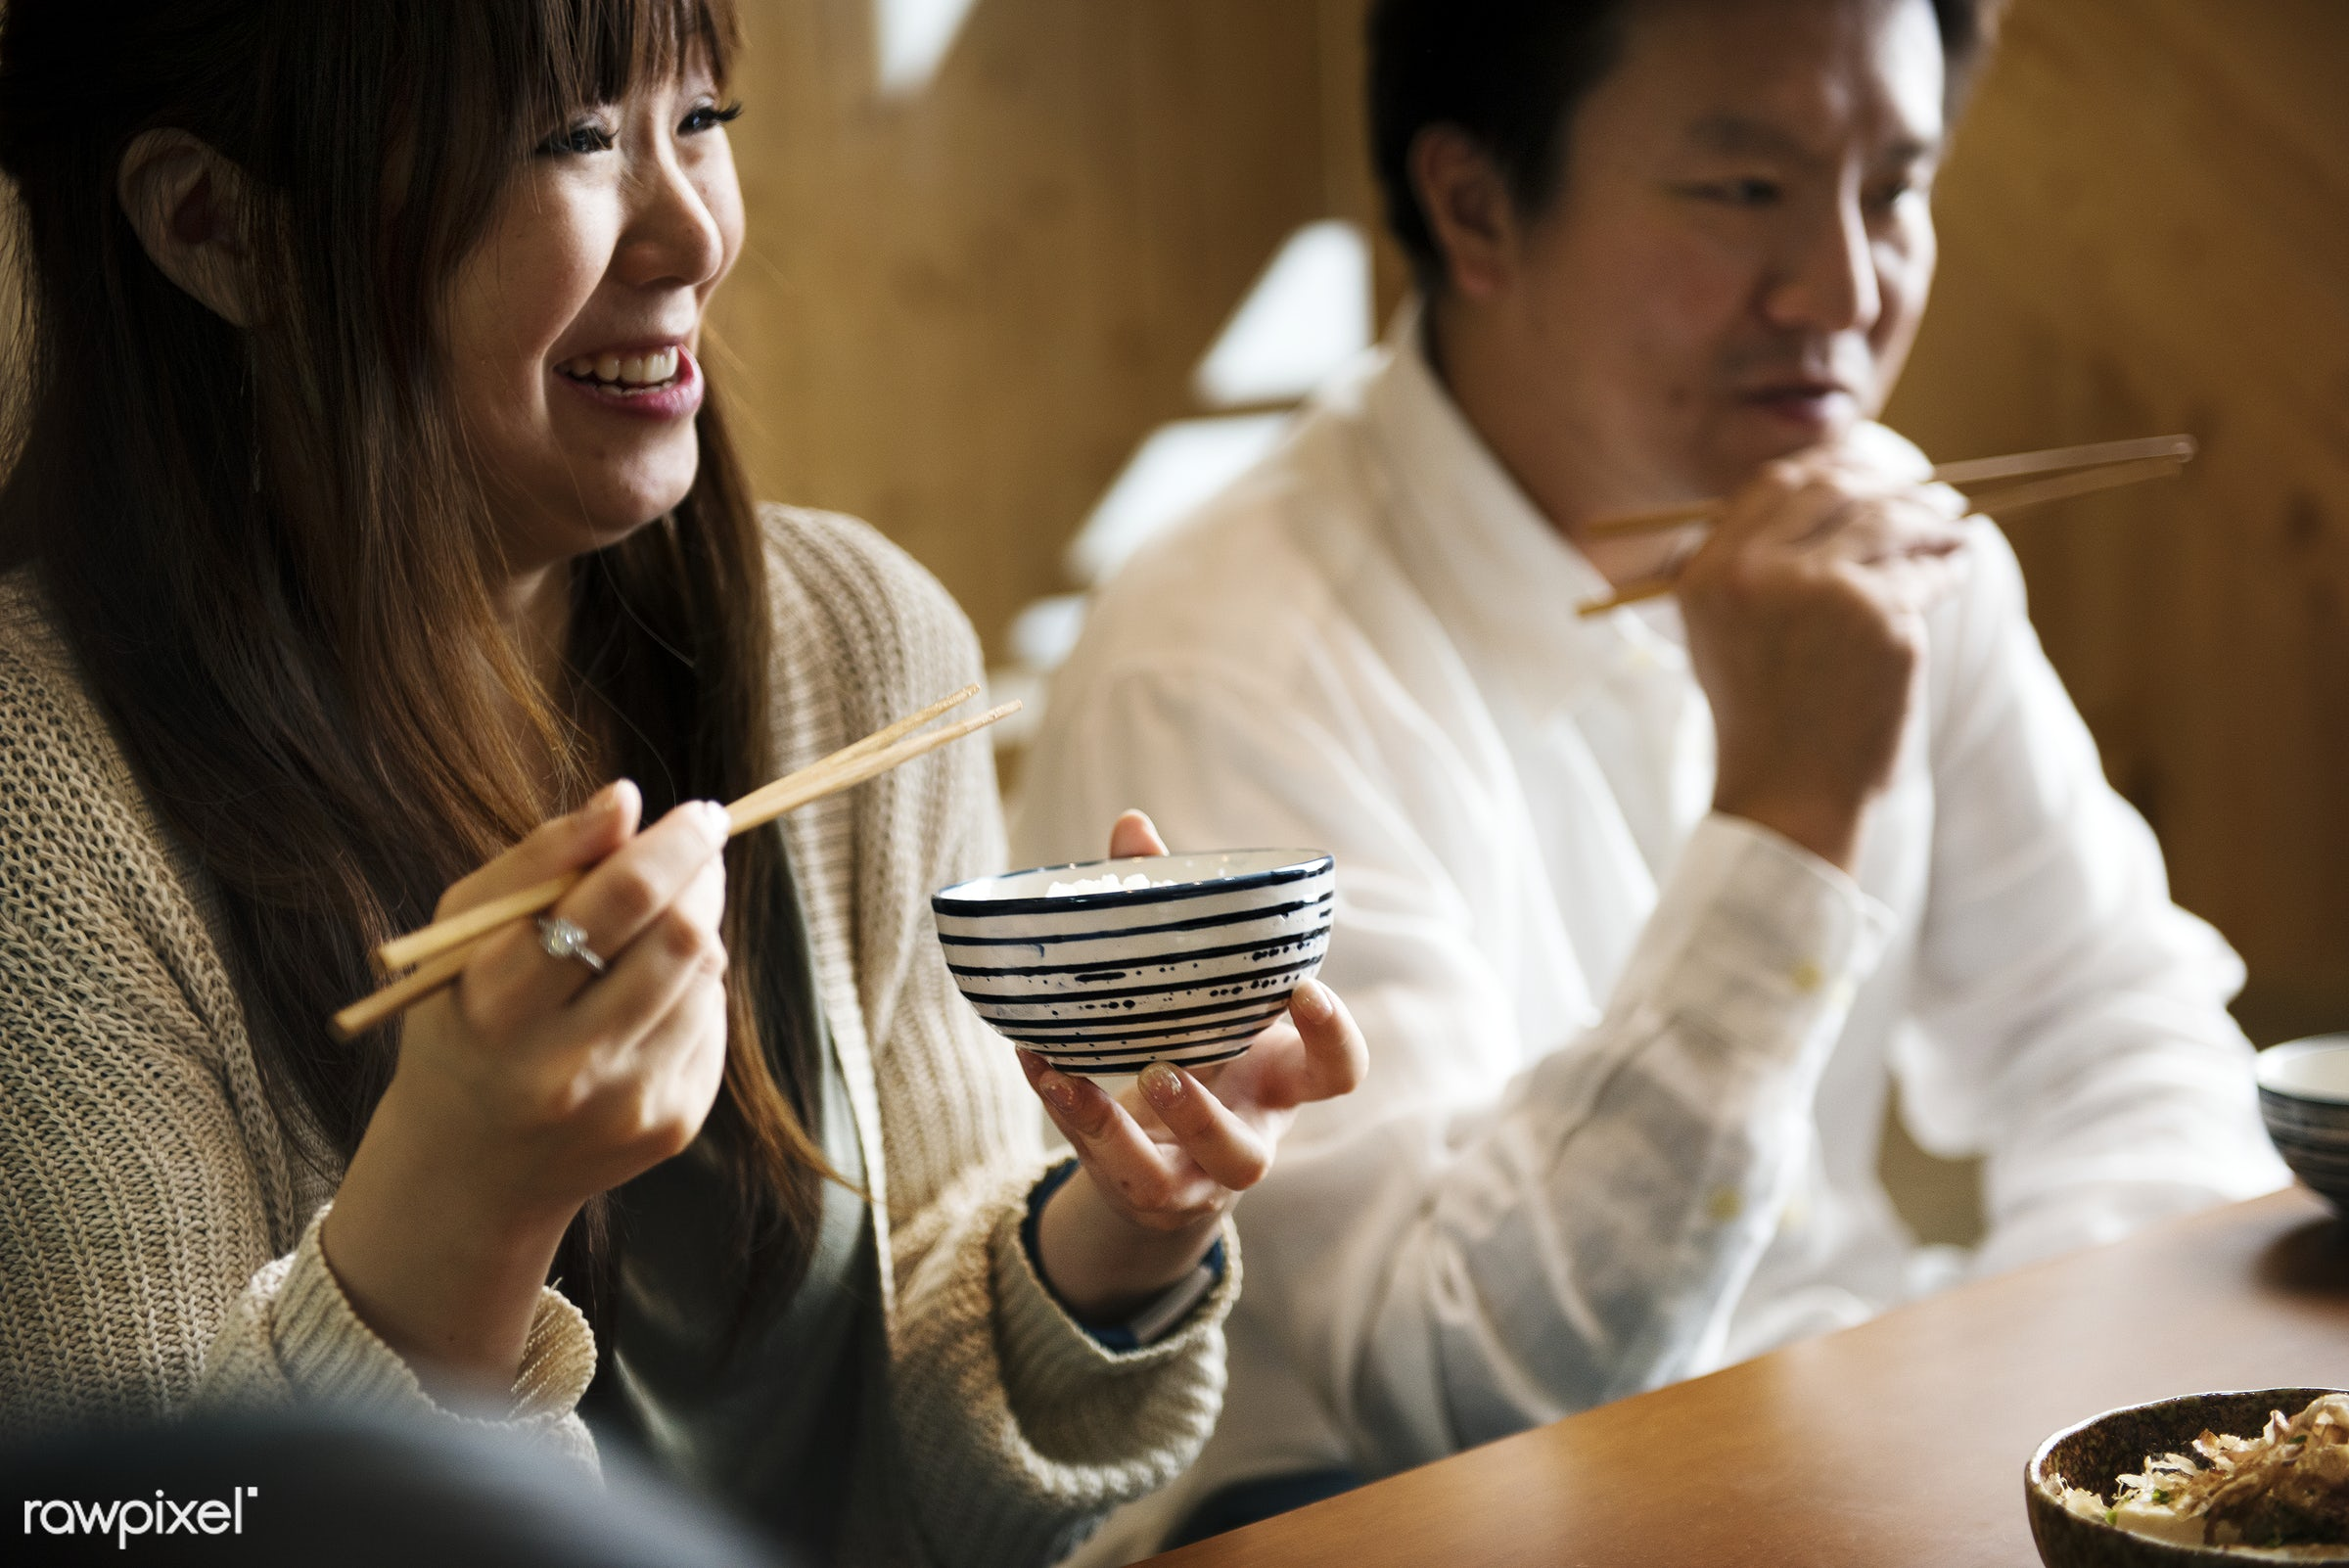 Japanese husband and wife eating - dining, eating, japan, asia, asian, cuisine, delicious, food, group, healthy, japanese,...